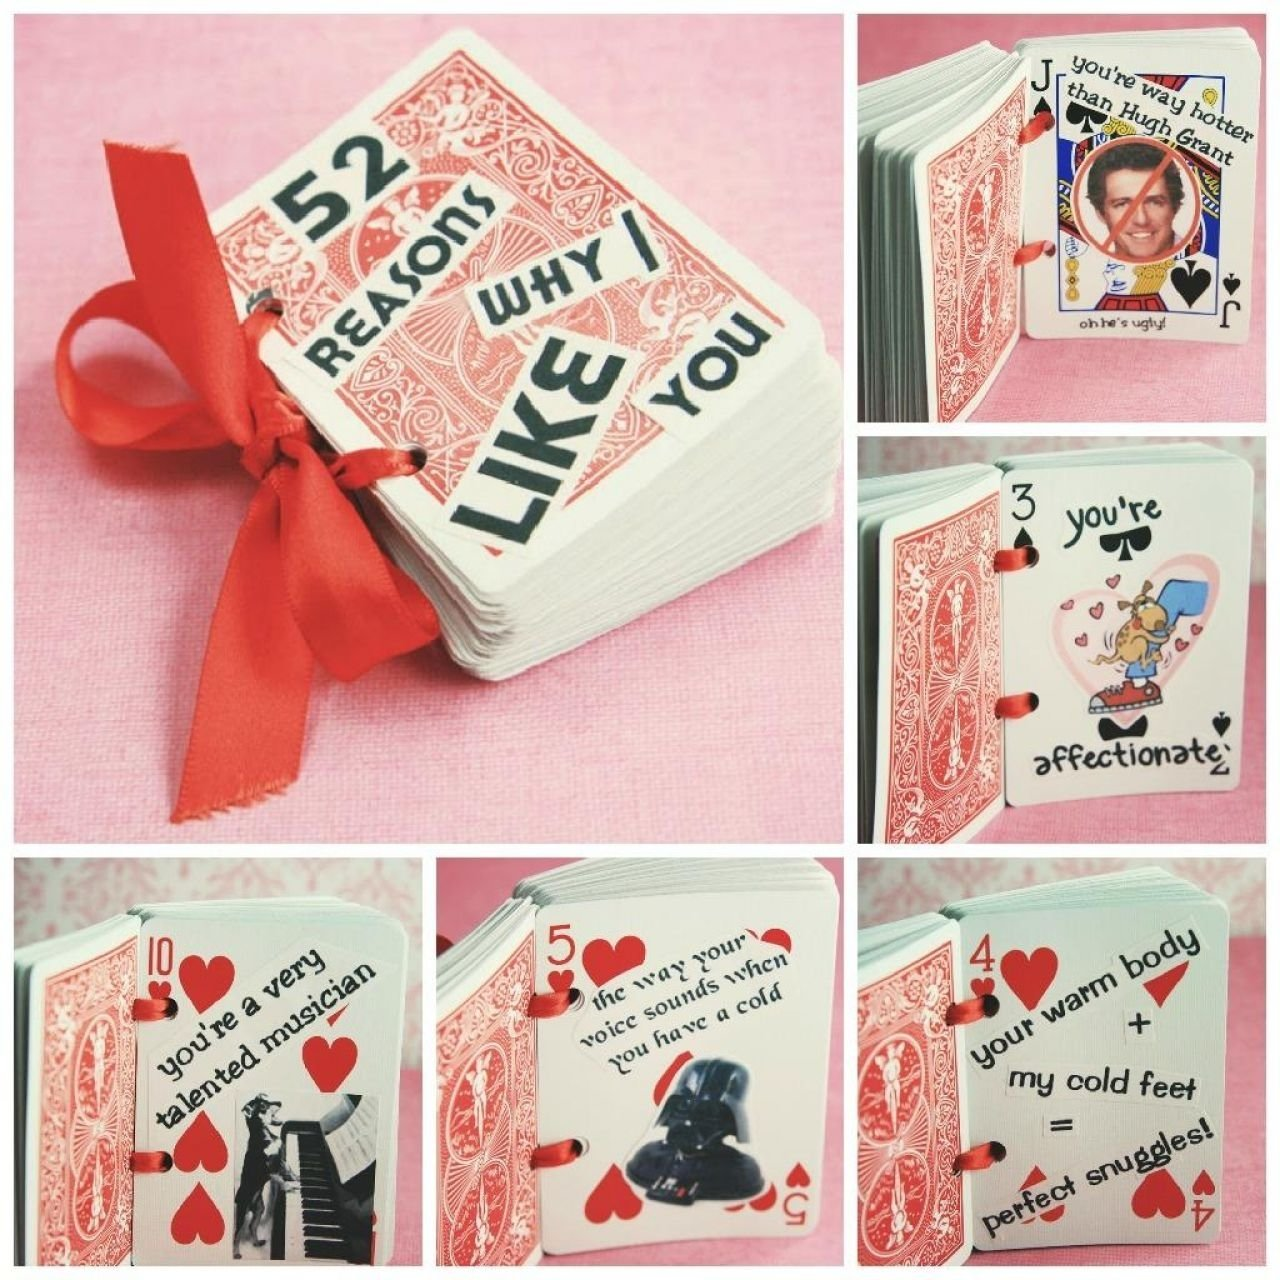 10 Beautiful Creative Valentines Gift Ideas For Him valentines day crafts him lovely valentine gifts your dma homes 21 2020